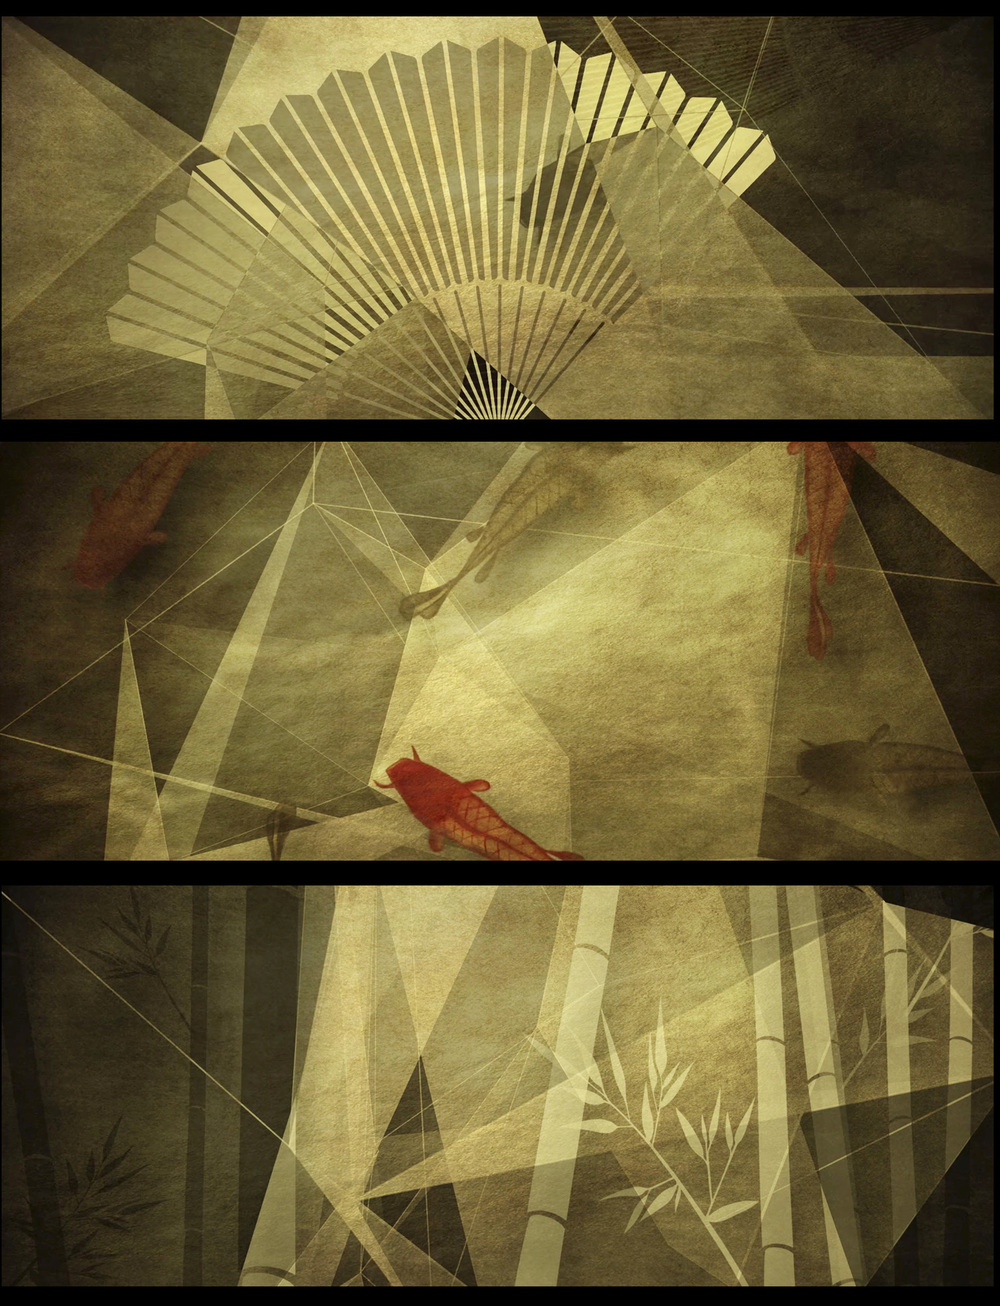 Stills from clips based on Origami concept